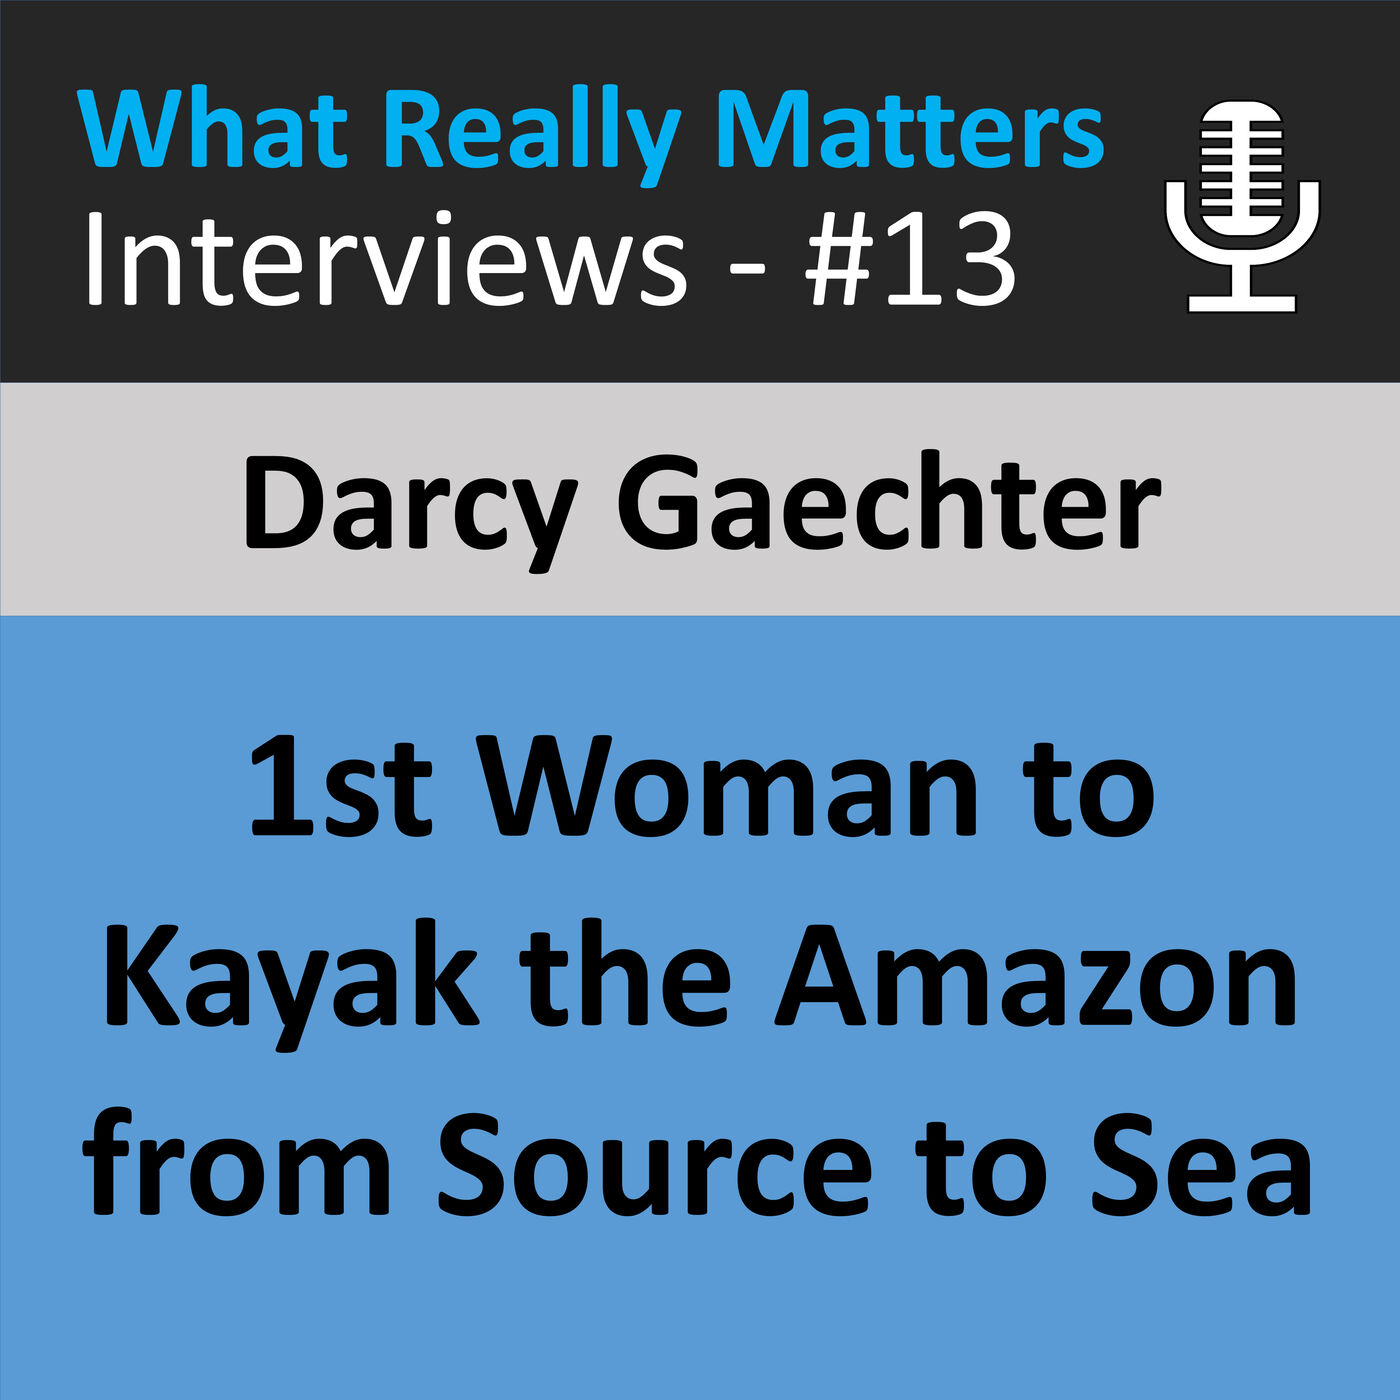 WRMI 013: Darcy Gaetchter: First Woman to Kayak the Amazon from Source to Sea